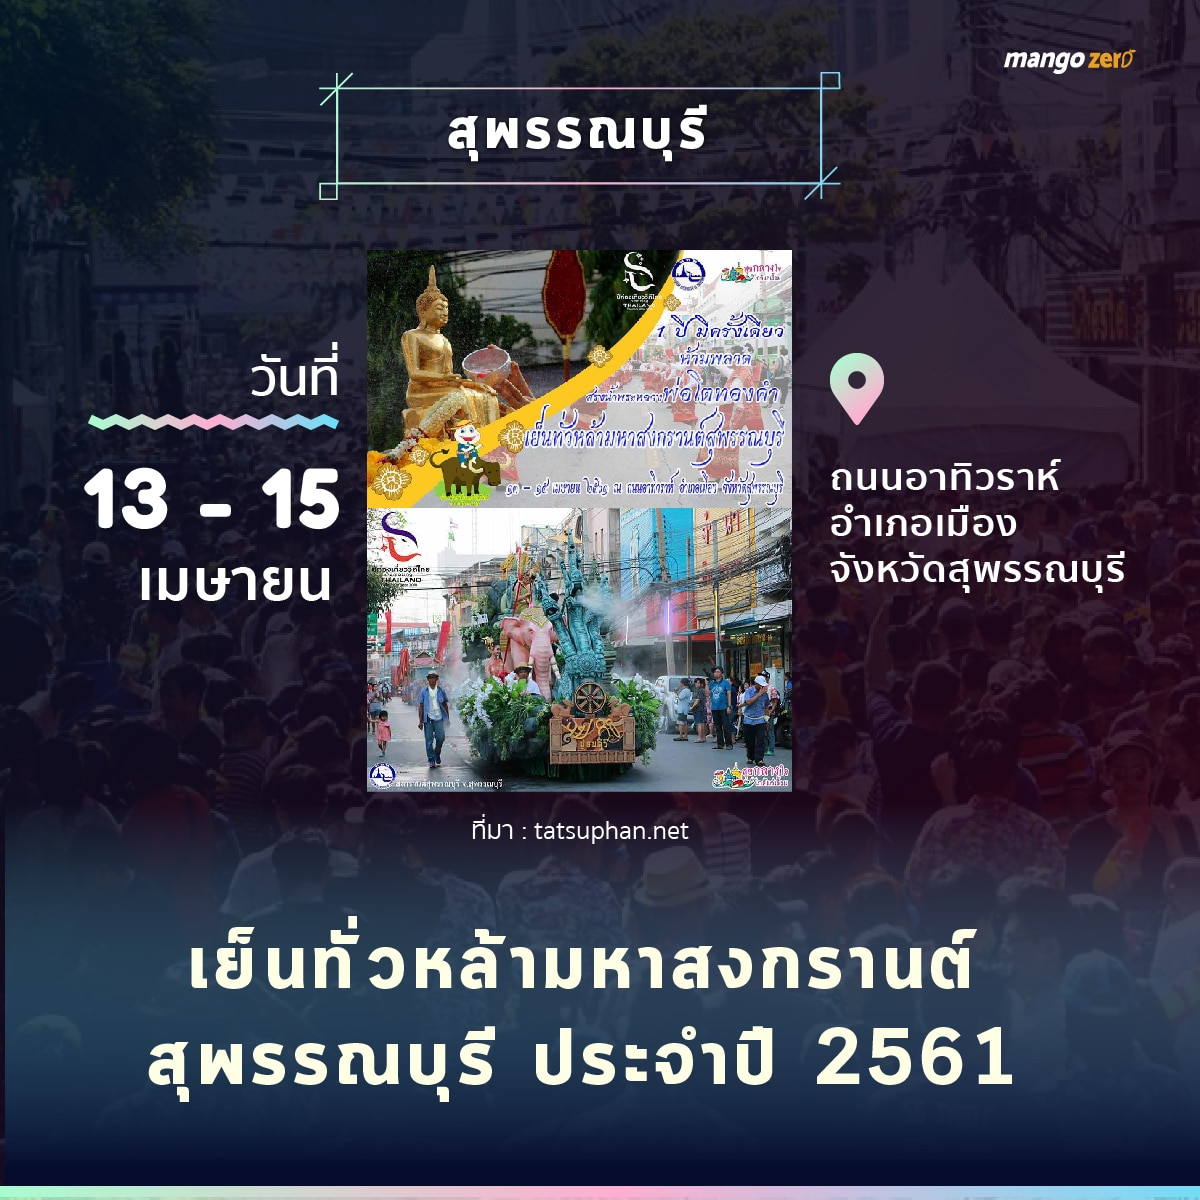 songkran-2018-events-thailand-06